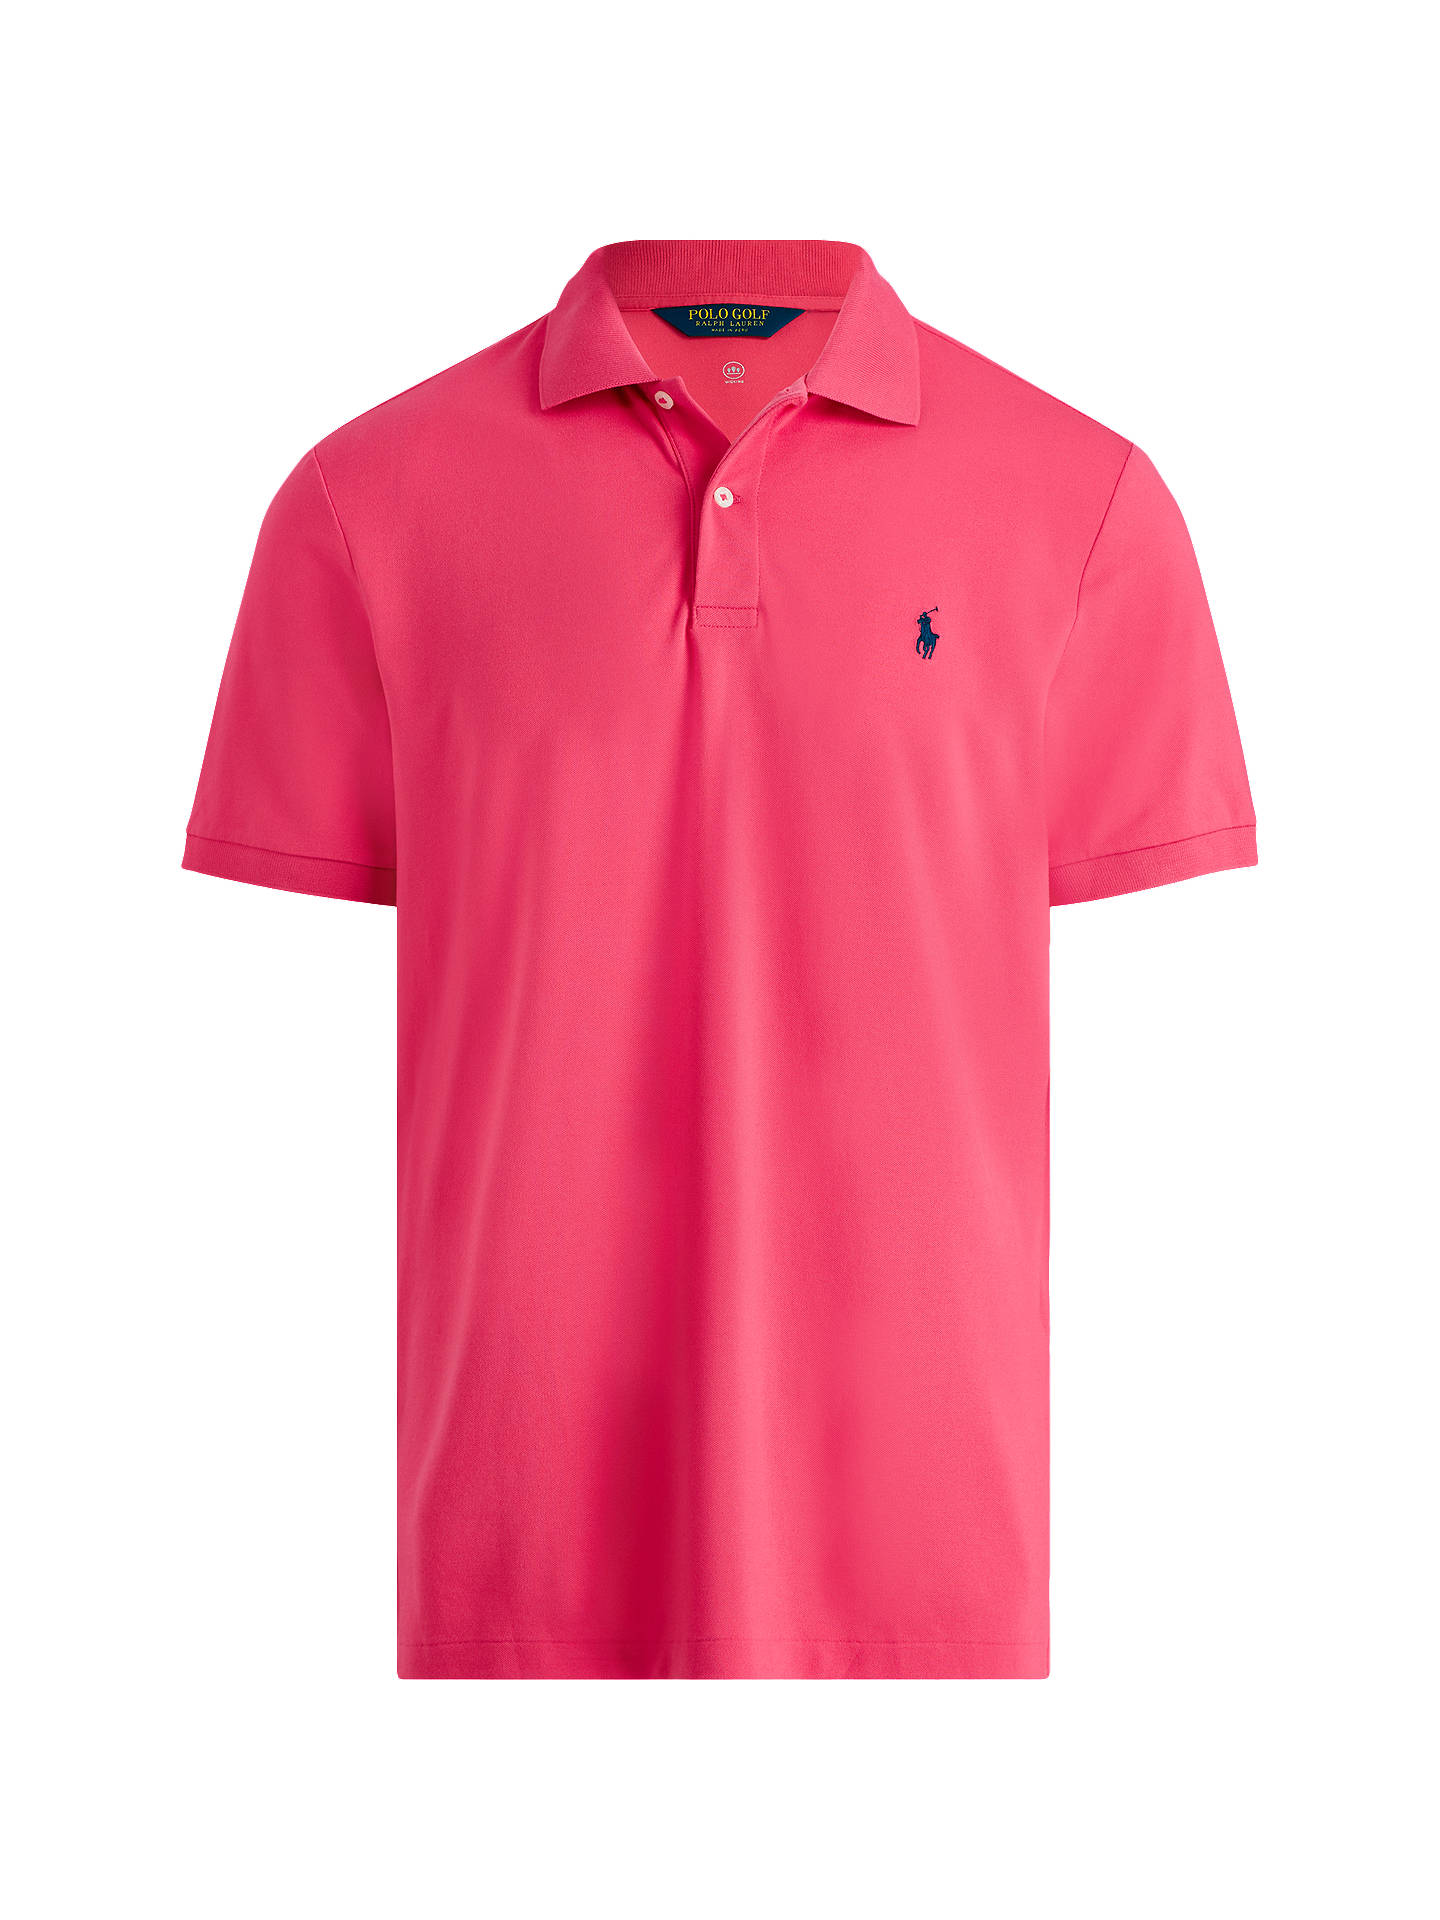 BuyPolo Golf by Ralph Lauren Short Sleeve Pique Polo Shirt, Exotic Pink, S Online at johnlewis.com